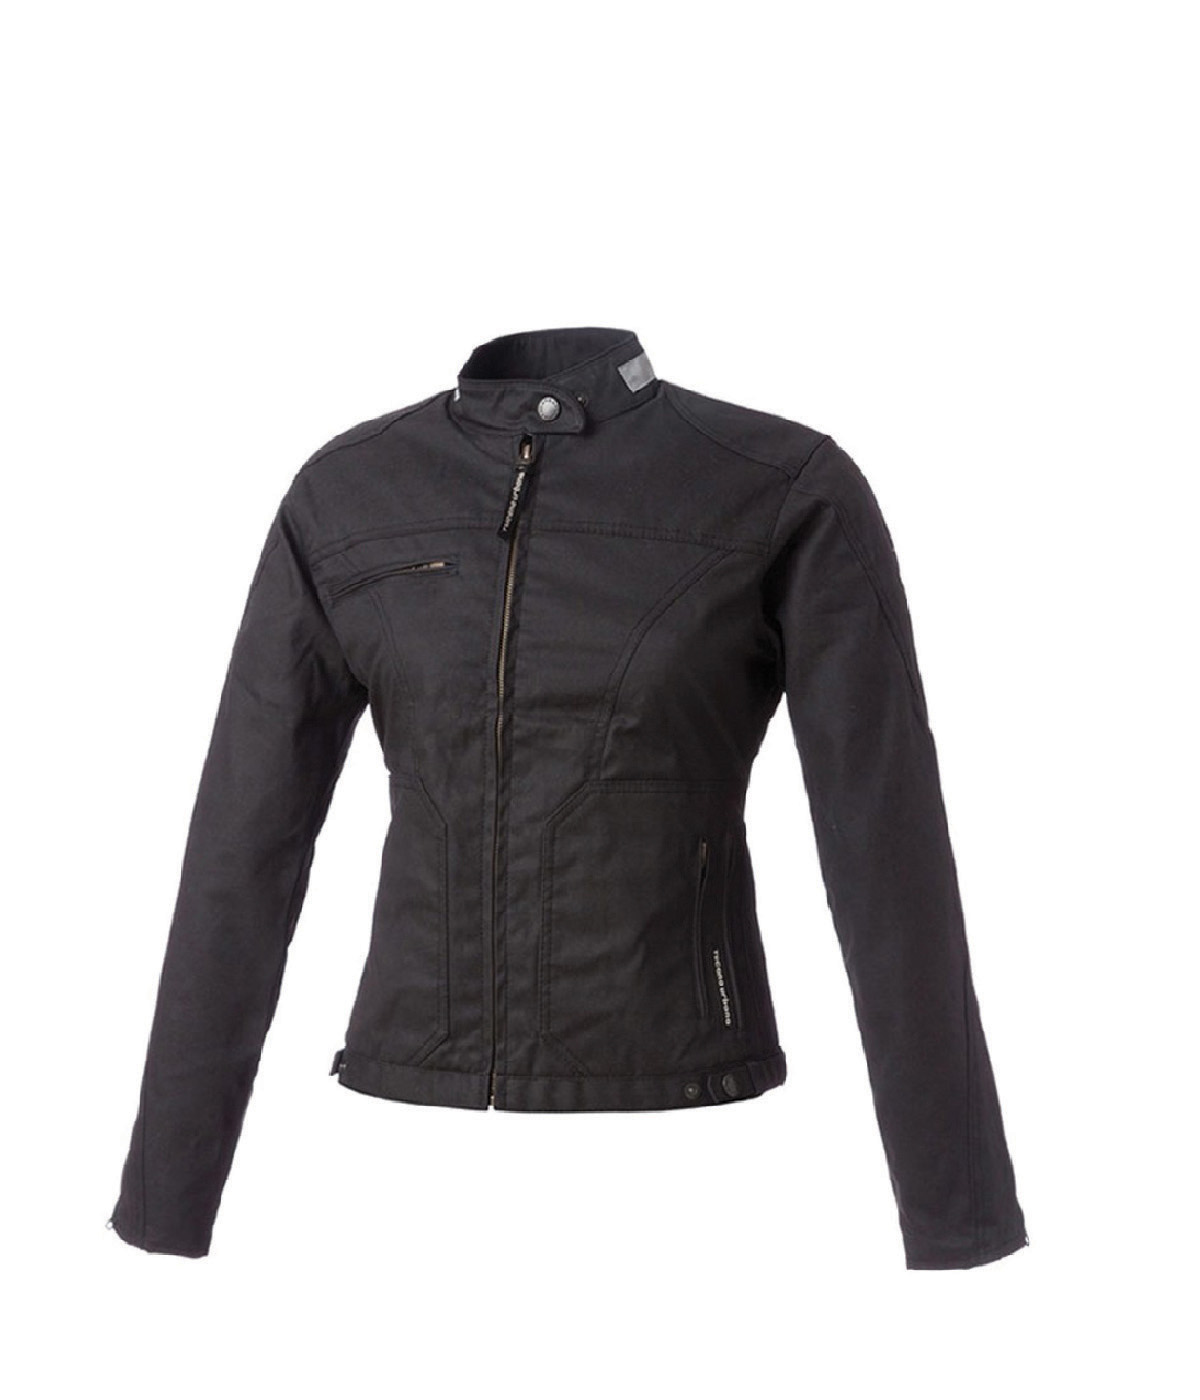 TUCANO URBANO - QUEEN AB - BLACK